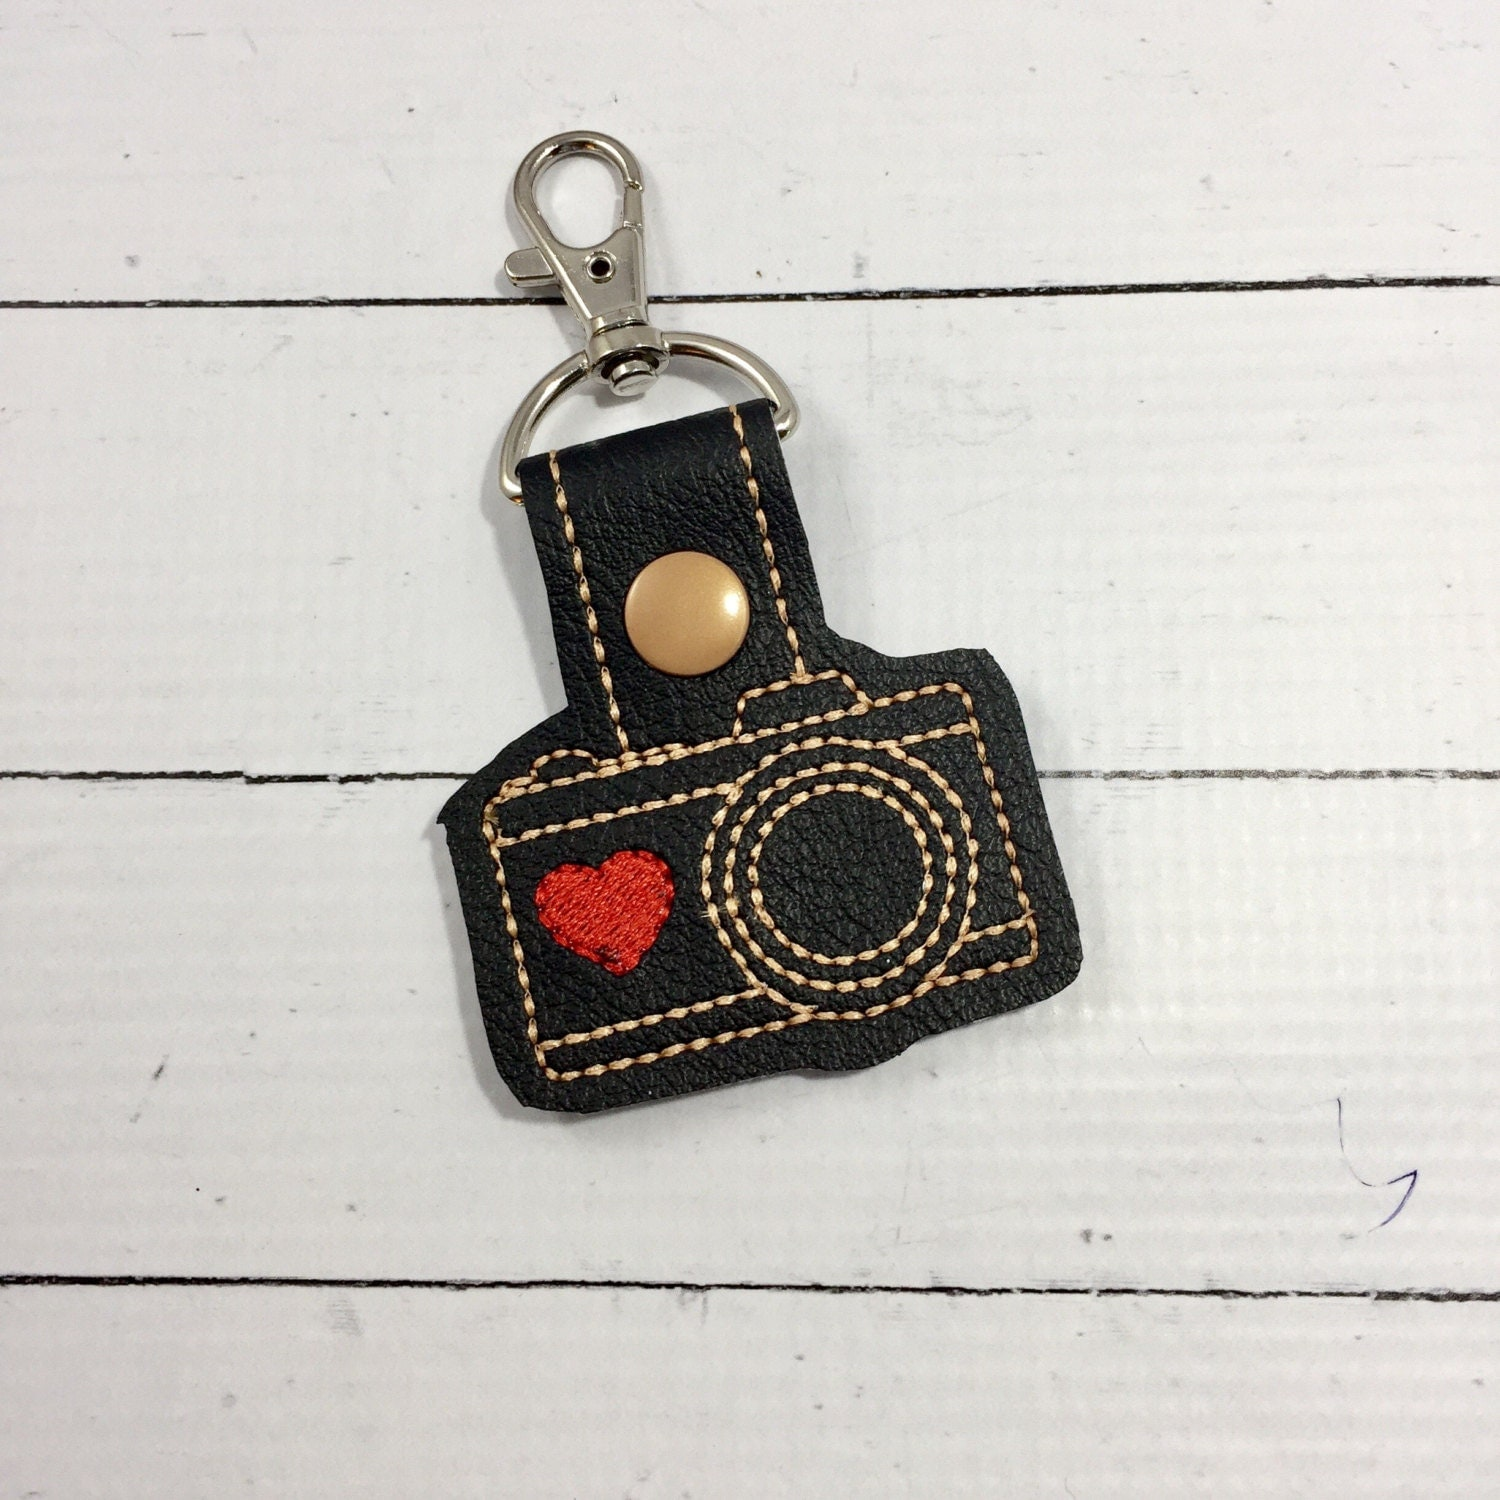 Camera Keychain - photographer key fob - photography planner charm - bag  charm - best gifts 389b1b62fe